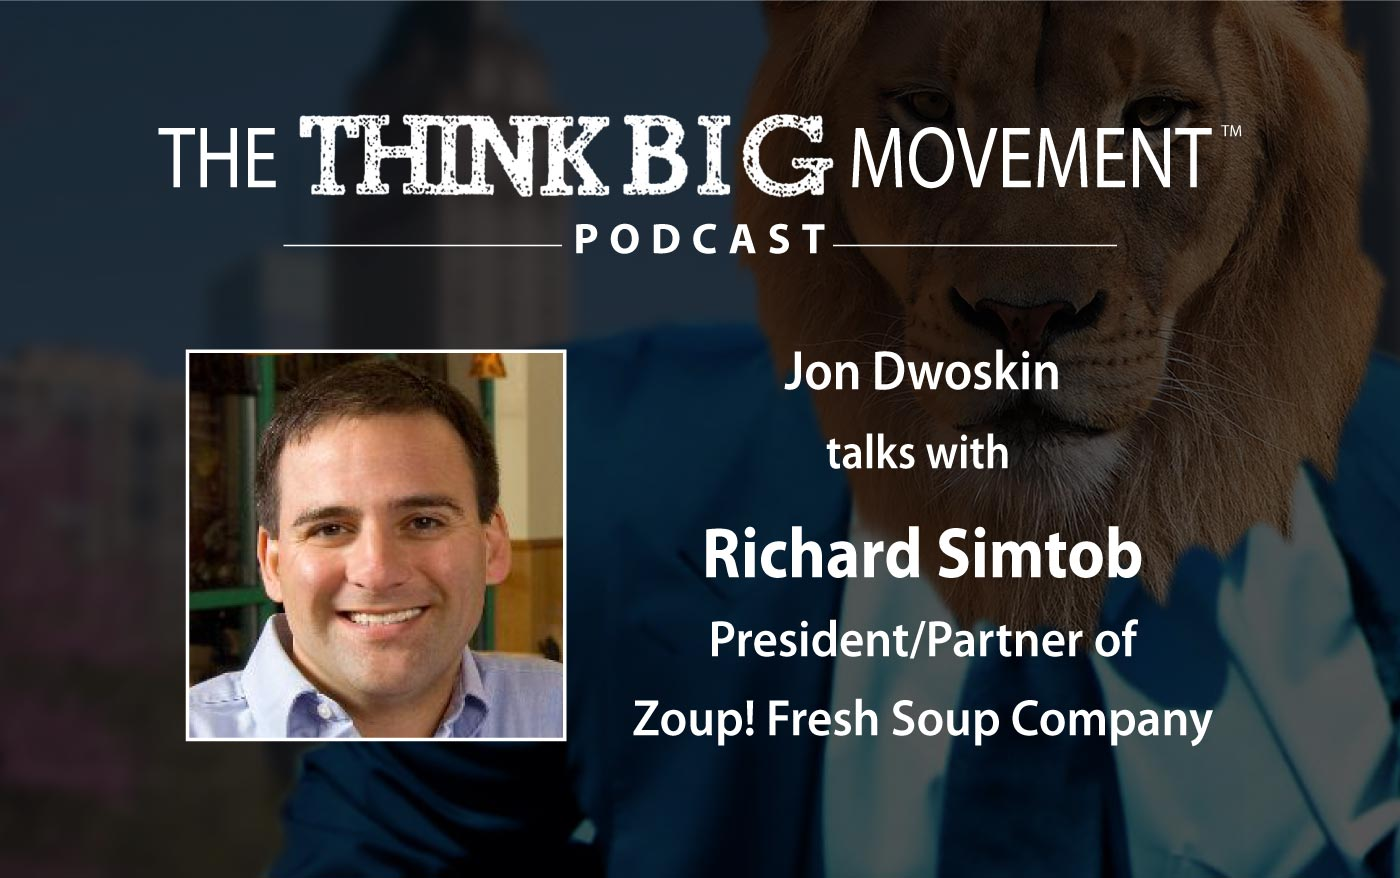 Think Big Movement Podcast - Jon Dwoskin Interviews Richard Simtob, President/Parter of Zoup! Fresh Soup Company